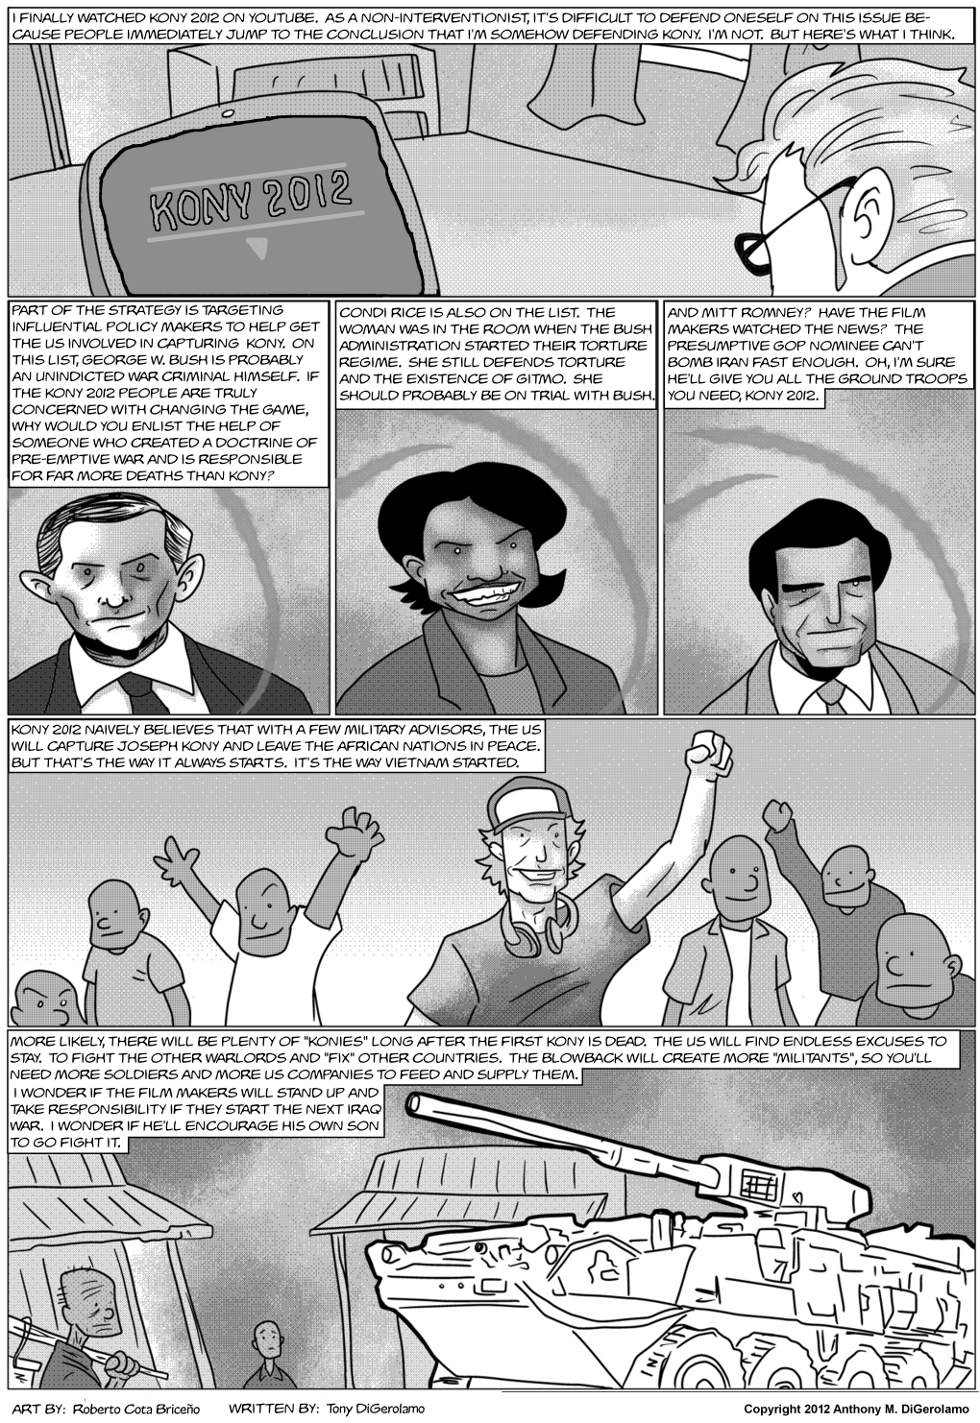 The Antiwar Comic:  In Response to Kony 2012